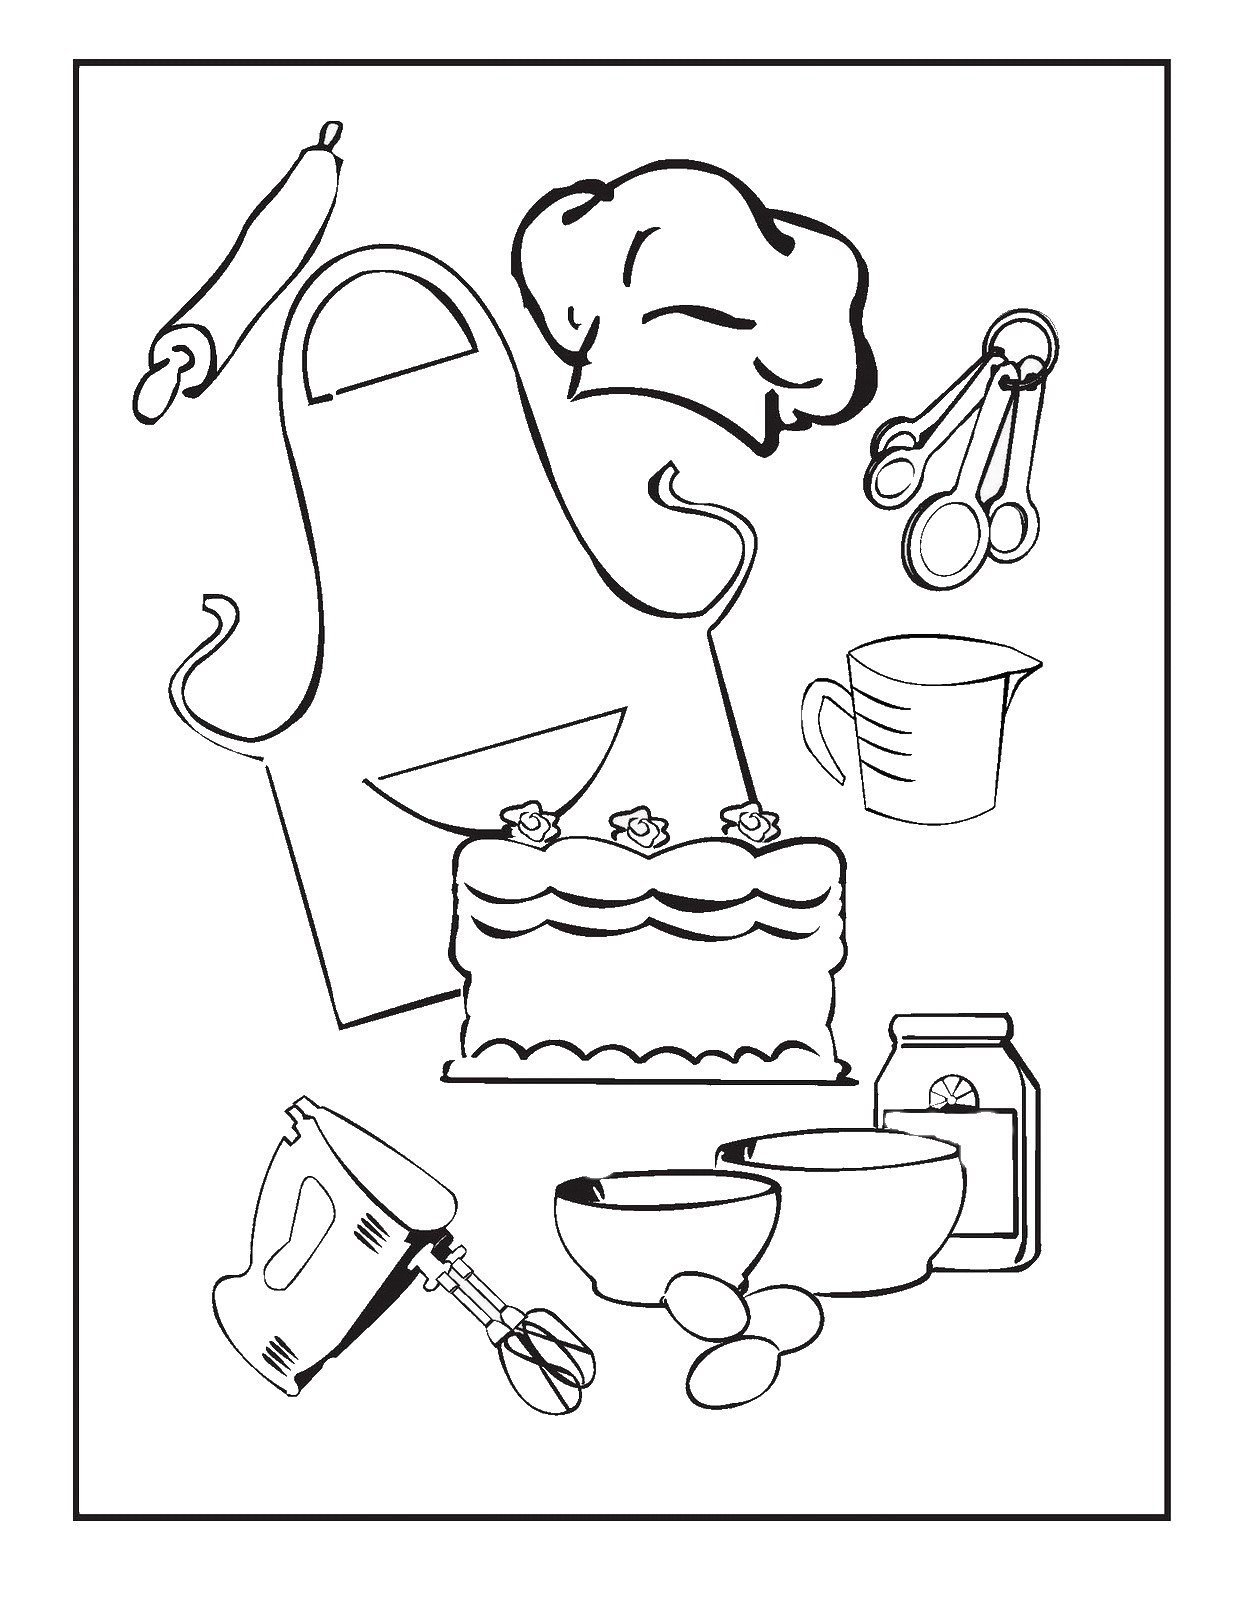 Cooking Amp Baking Coloring Pages